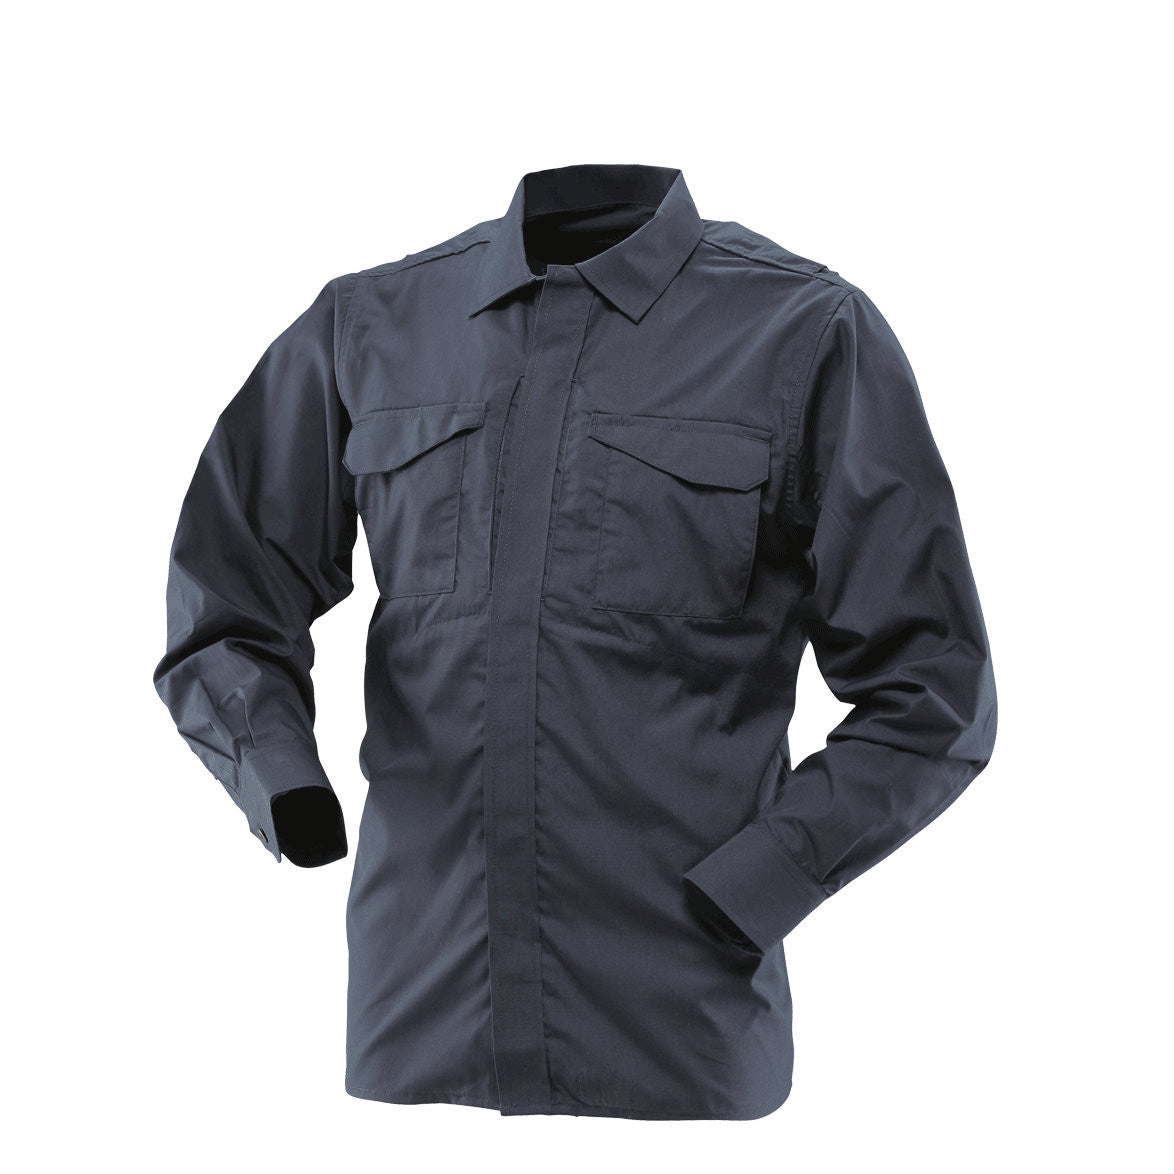 Tru-Spec 24/7 Series Ultralight Uniform Shirt Navy - Indy Army Navy